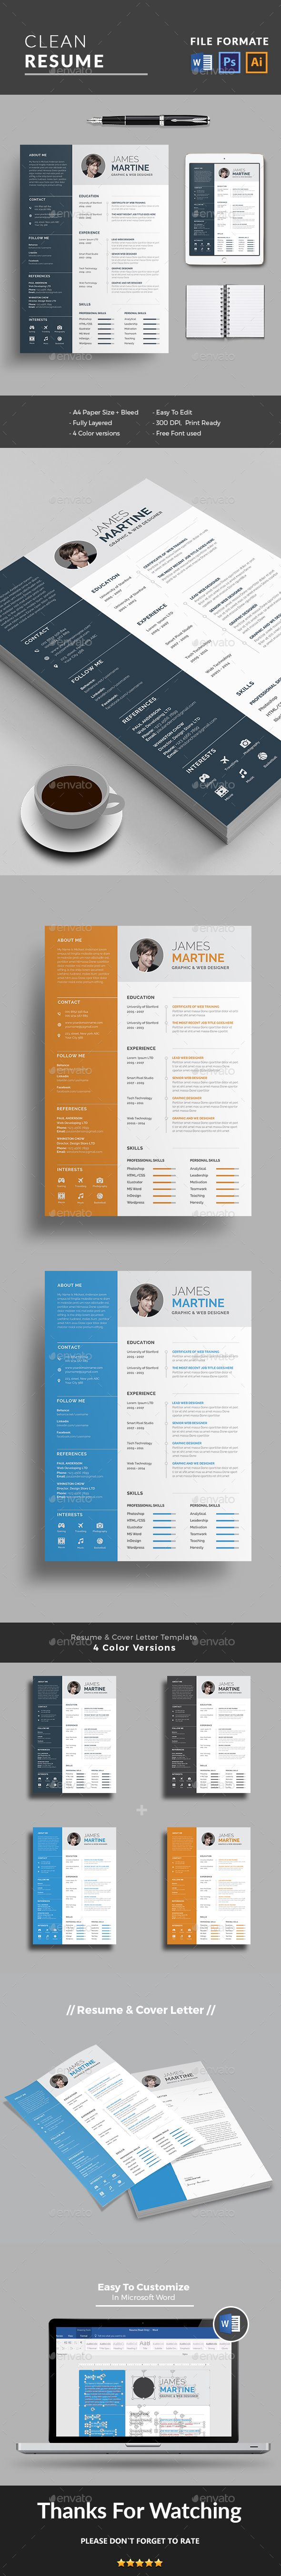 #Resume - Resumes #Stationery Download here: https://graphicriver.net/item/resume/19276022?ref=classicdesignp